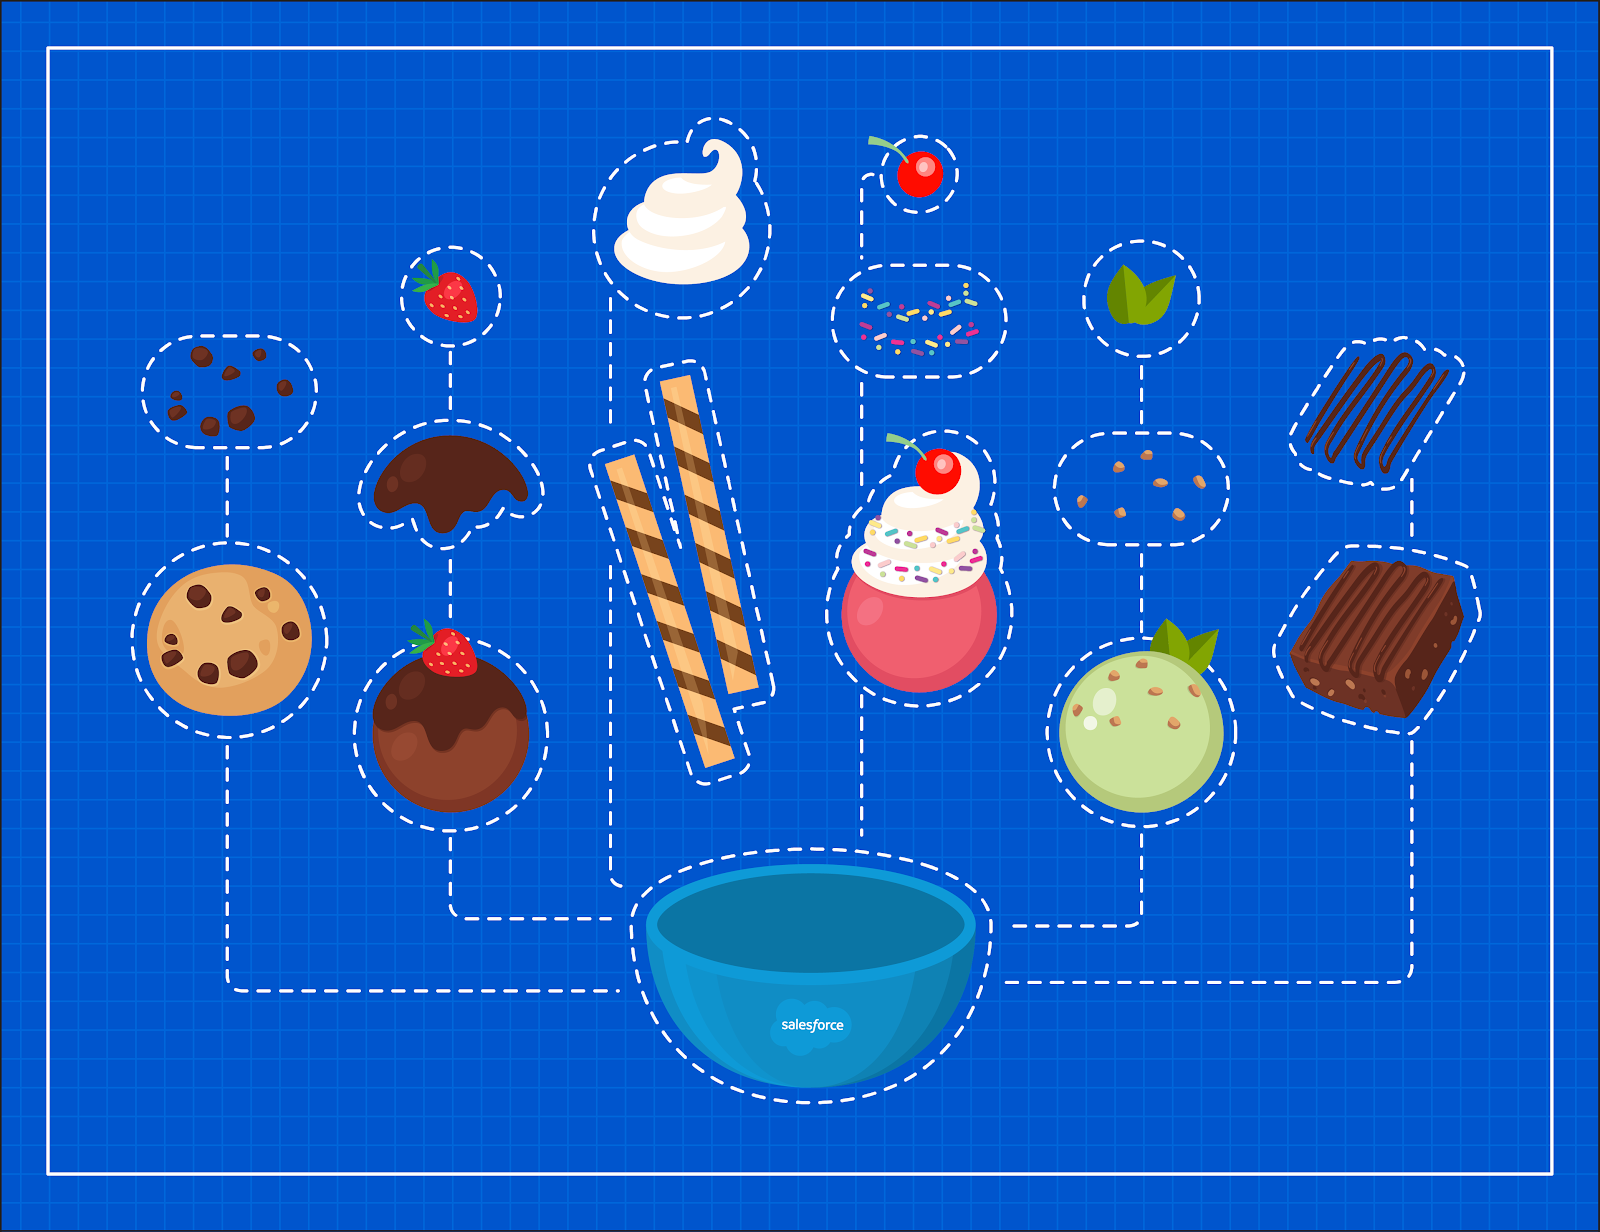 A blueprint showing CumulusCI project components represented by parts of a sundae.